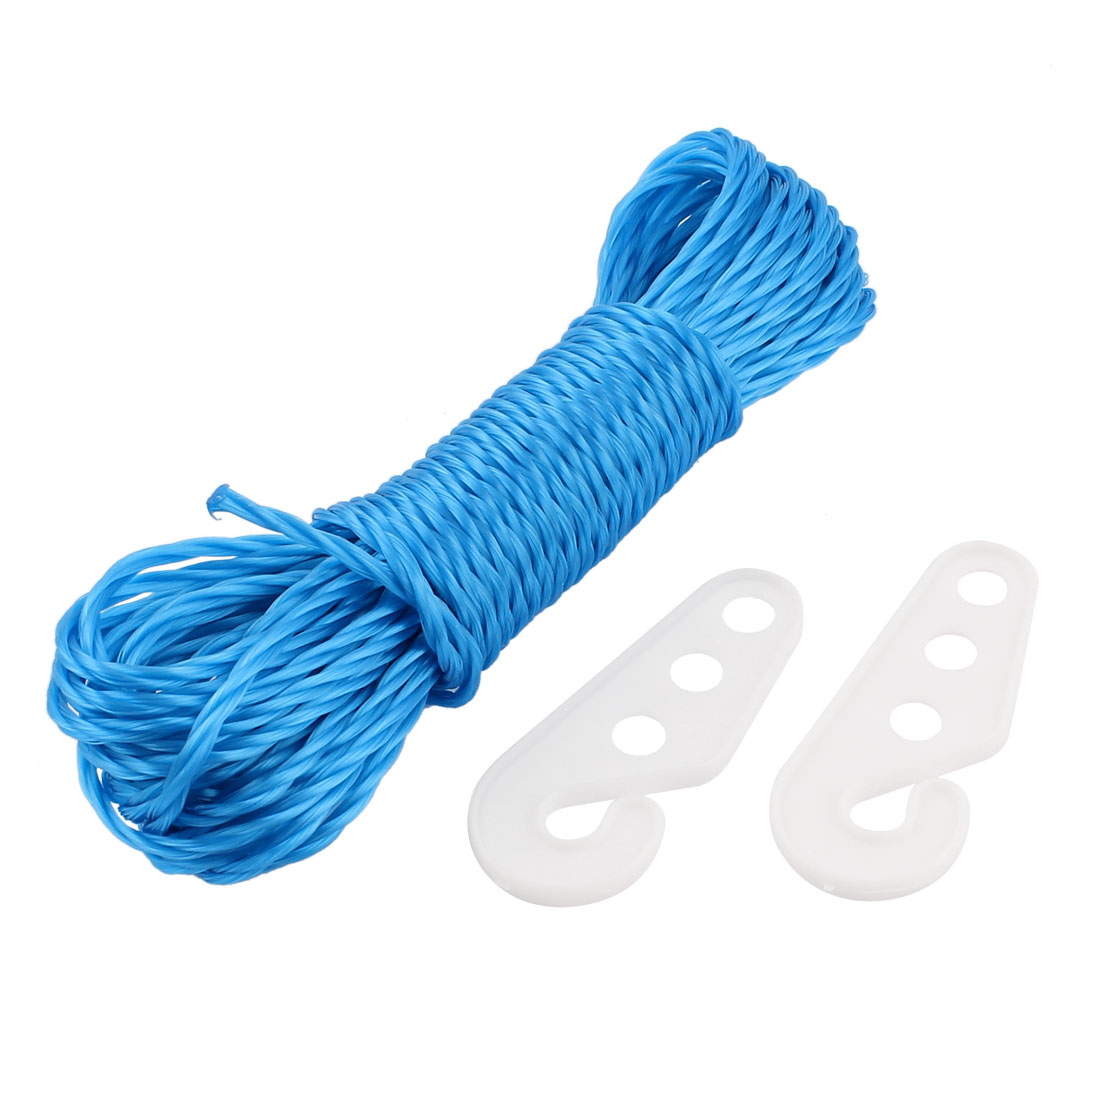 Camping Outdoor Laundry Nylon Clothesline Clothes Towels Hanger Line Rope String w Hooks 10M Long Blue